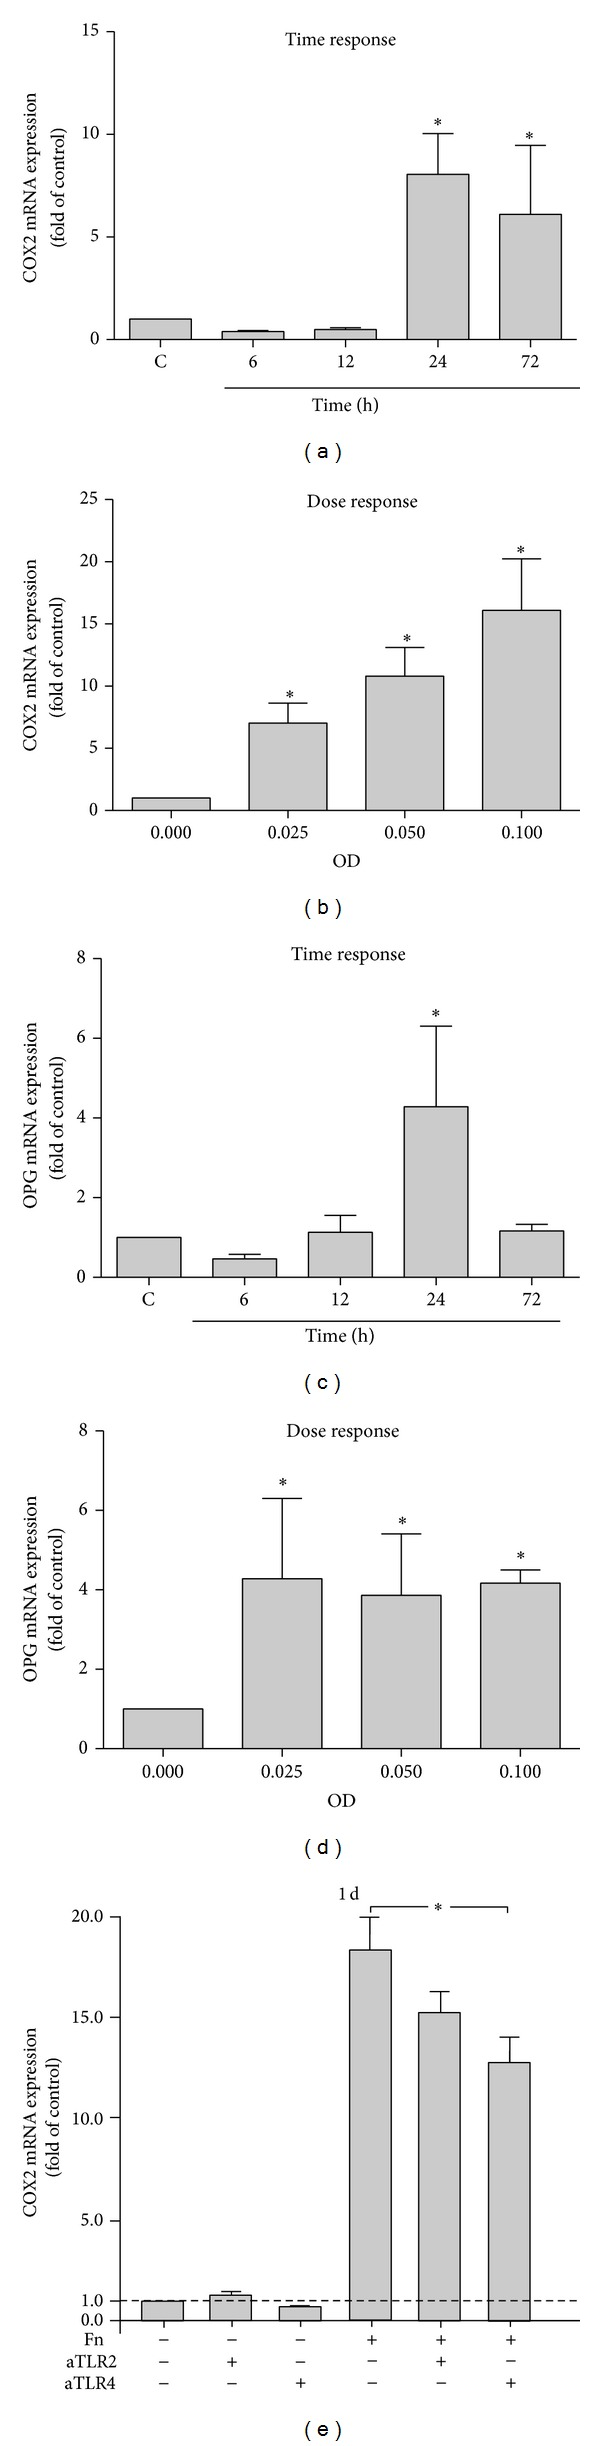 (a) COX2 expression in PDL cells stimulated by F. nucleatum ATCC 25586 over time. (b) COX2 expression in PDL cells stimulated by various concentrations of F. nucleatum ATCC 25586 at 1 day. (c) OPG expression in PDL cells stimulated by F. nucleatum ATCC 25586 over time. (d) OPG expression in PDL cells stimulated by various concentrations of F. nucleatum ATCC 25586 at 1 day. (e) COX2 expression in PDL cells stimulated by F. nucleatum ATCC 25586 (OD 0.025) in the presence or in the absence of anti-TLR2 or anti-TLR4 antibodies at 1 day. *Significant difference between groups ( P